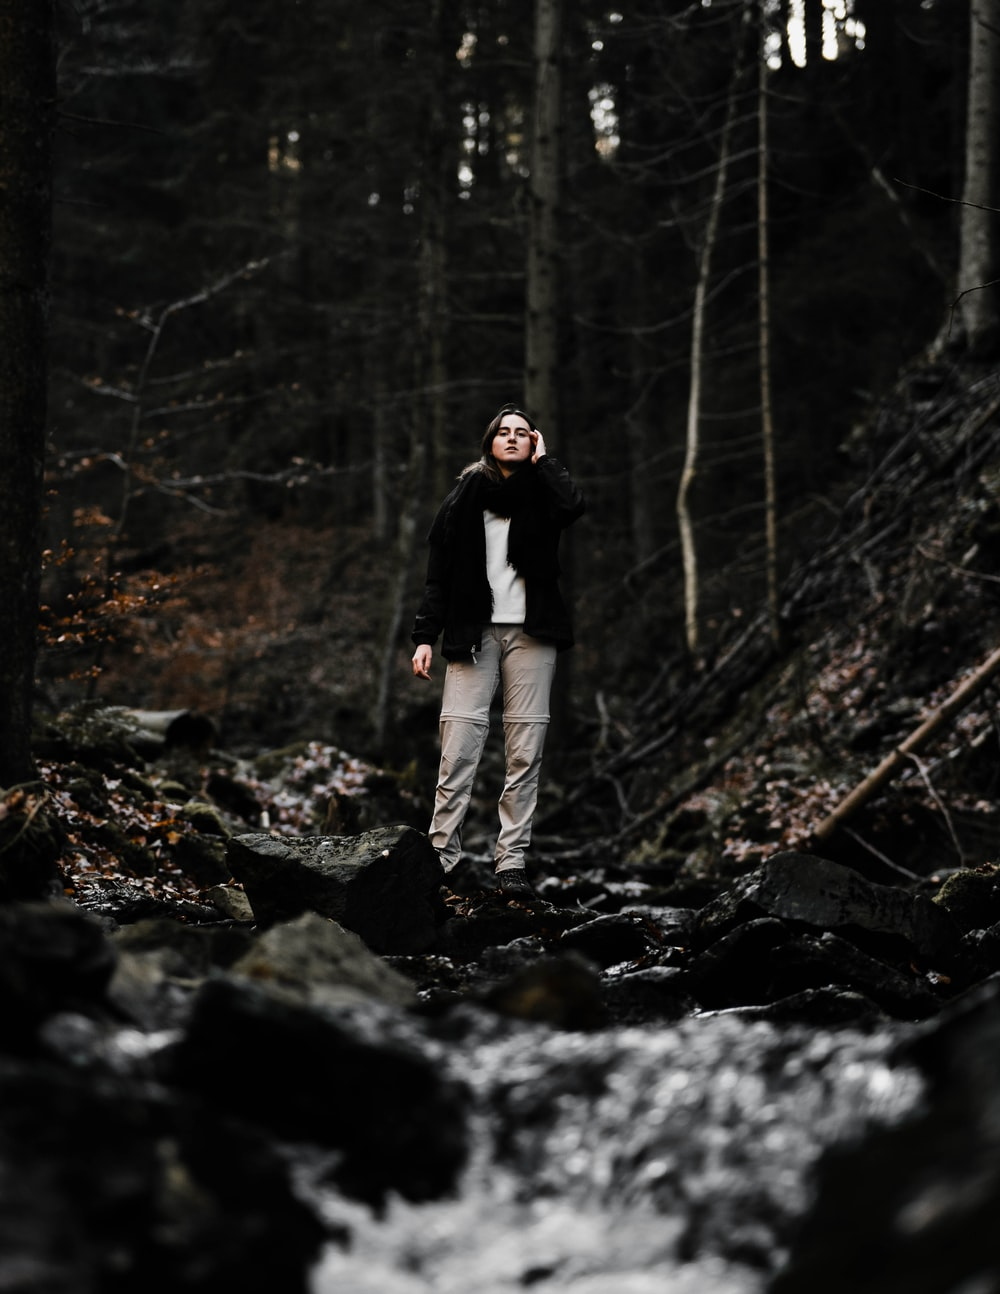 man in black jacket and gray pants standing on rocky ground surrounded by trees